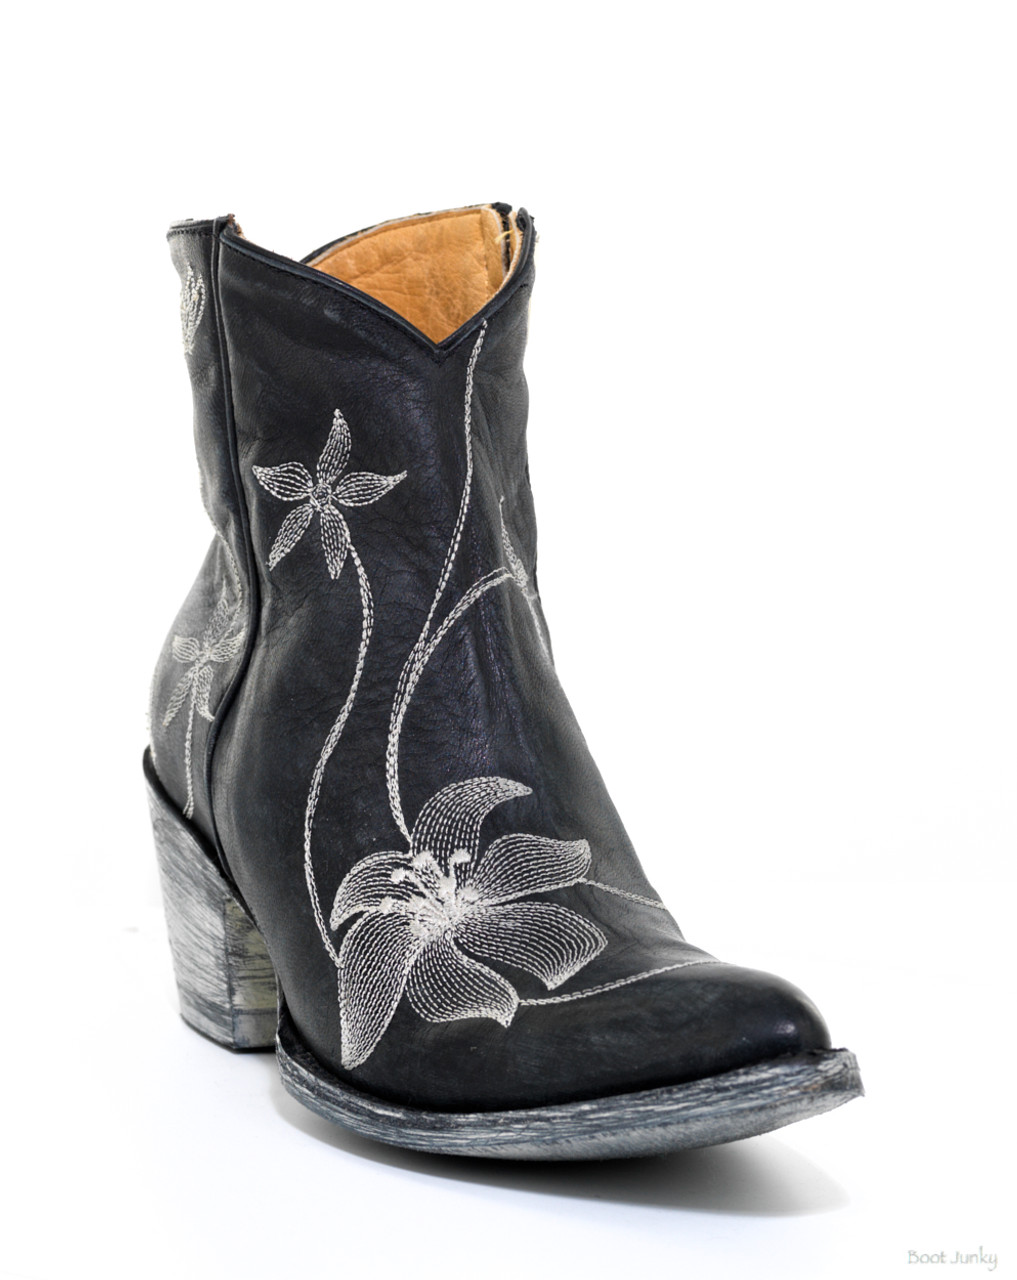 Bl1136 7 Old Gringo Black Flora Loca Embroidered Ankle Boots Detail